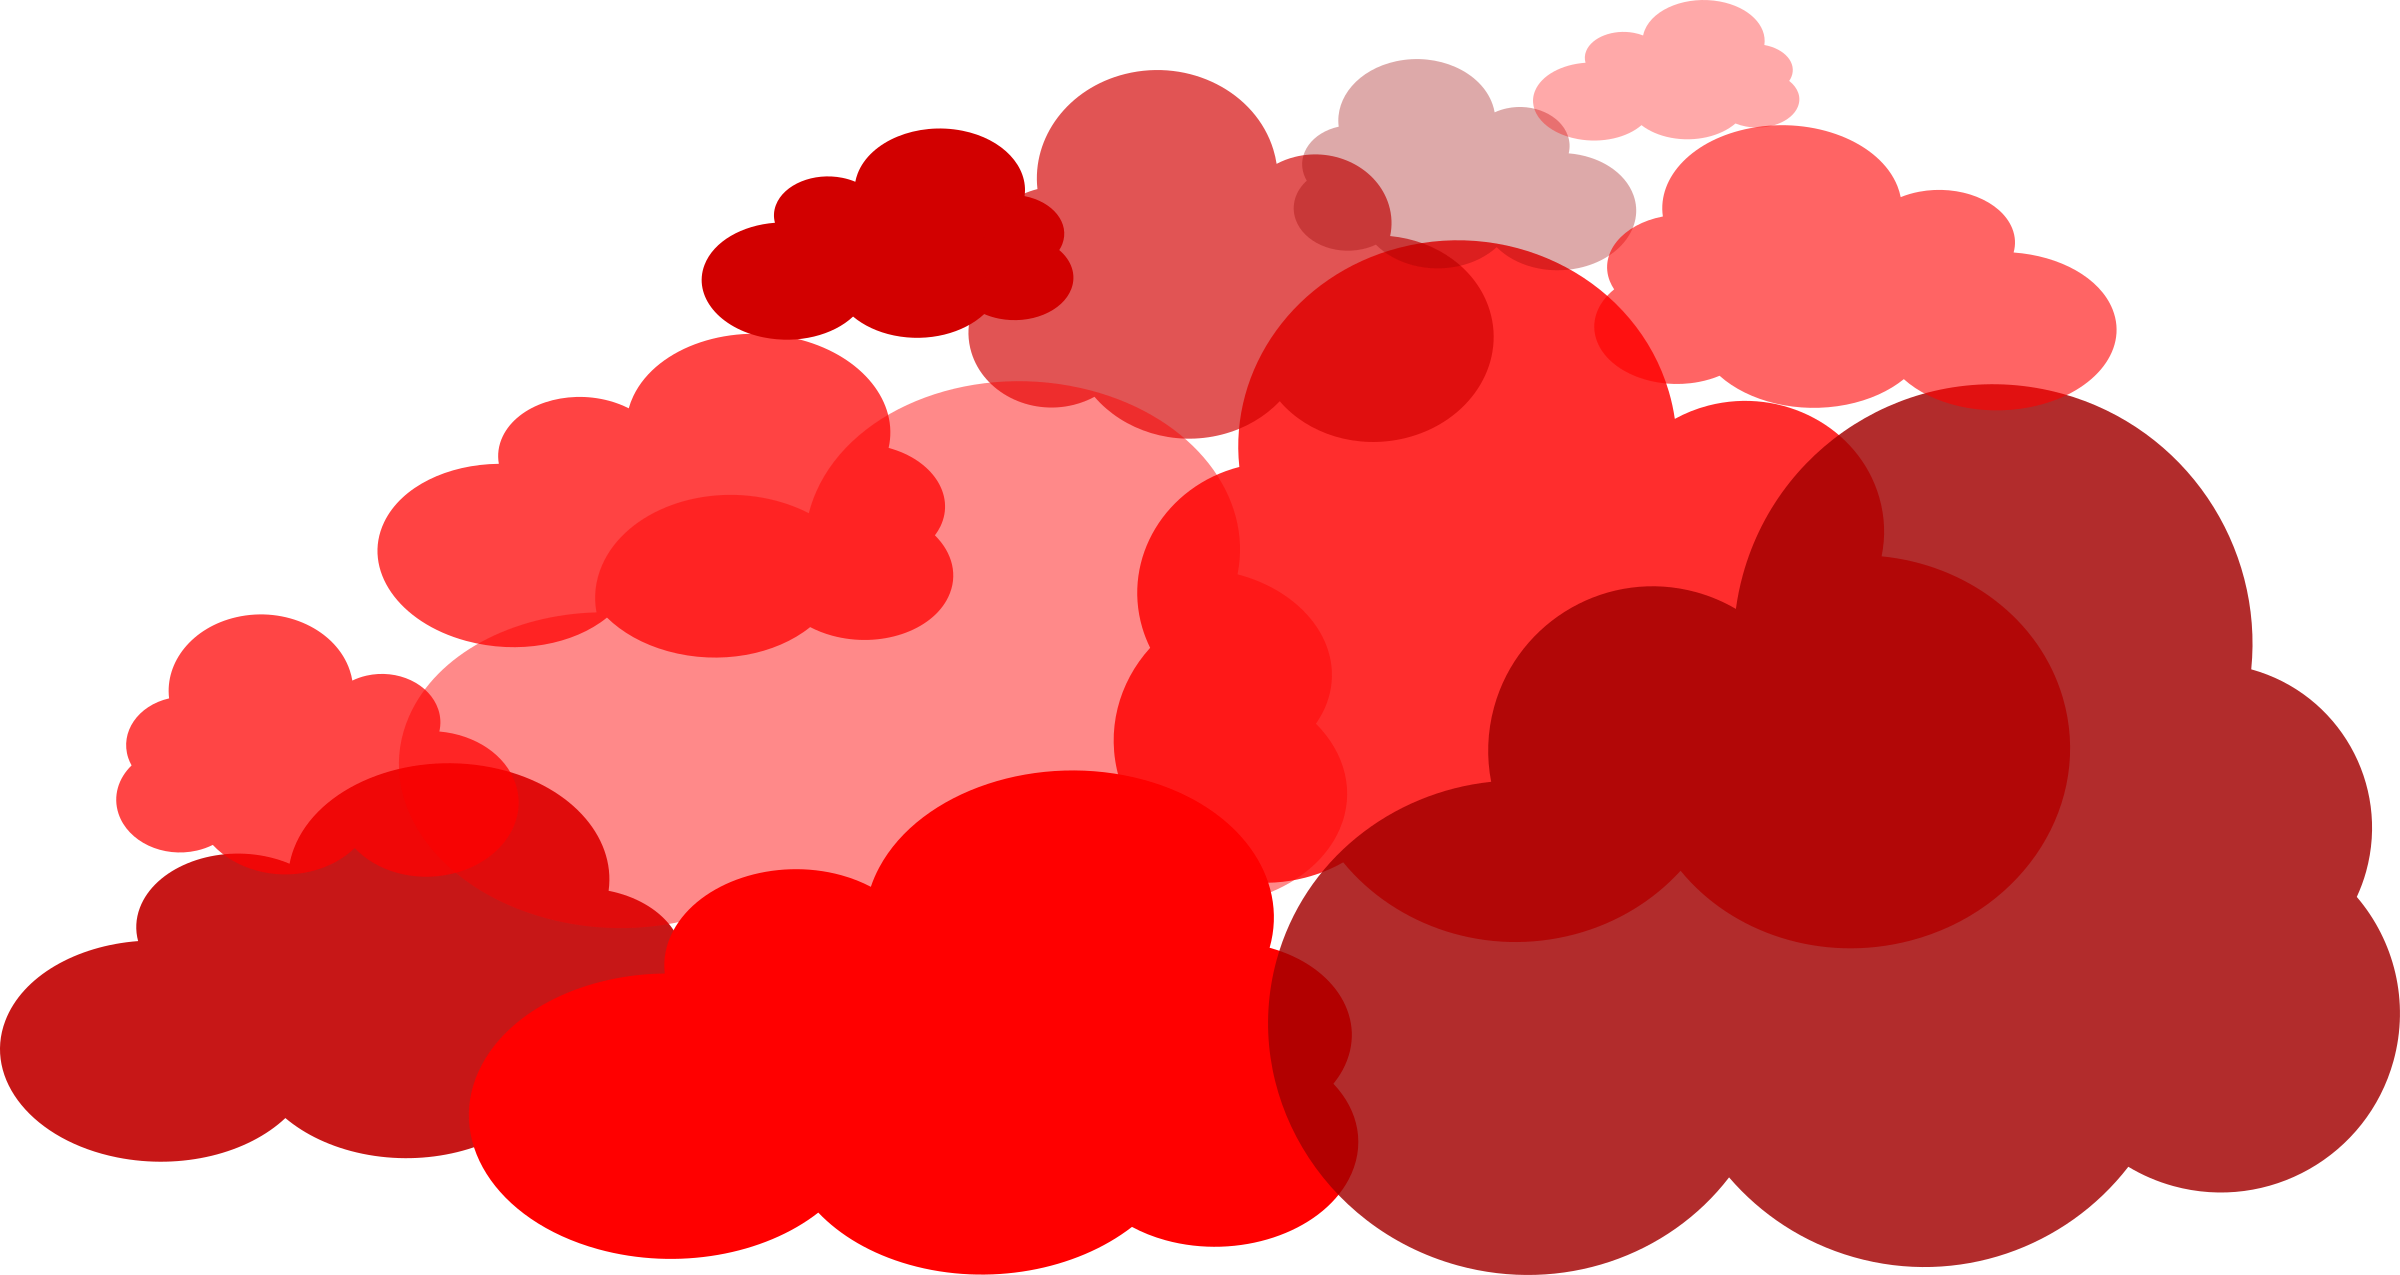 Clouds red pencil and. Dream clipart cloud shape